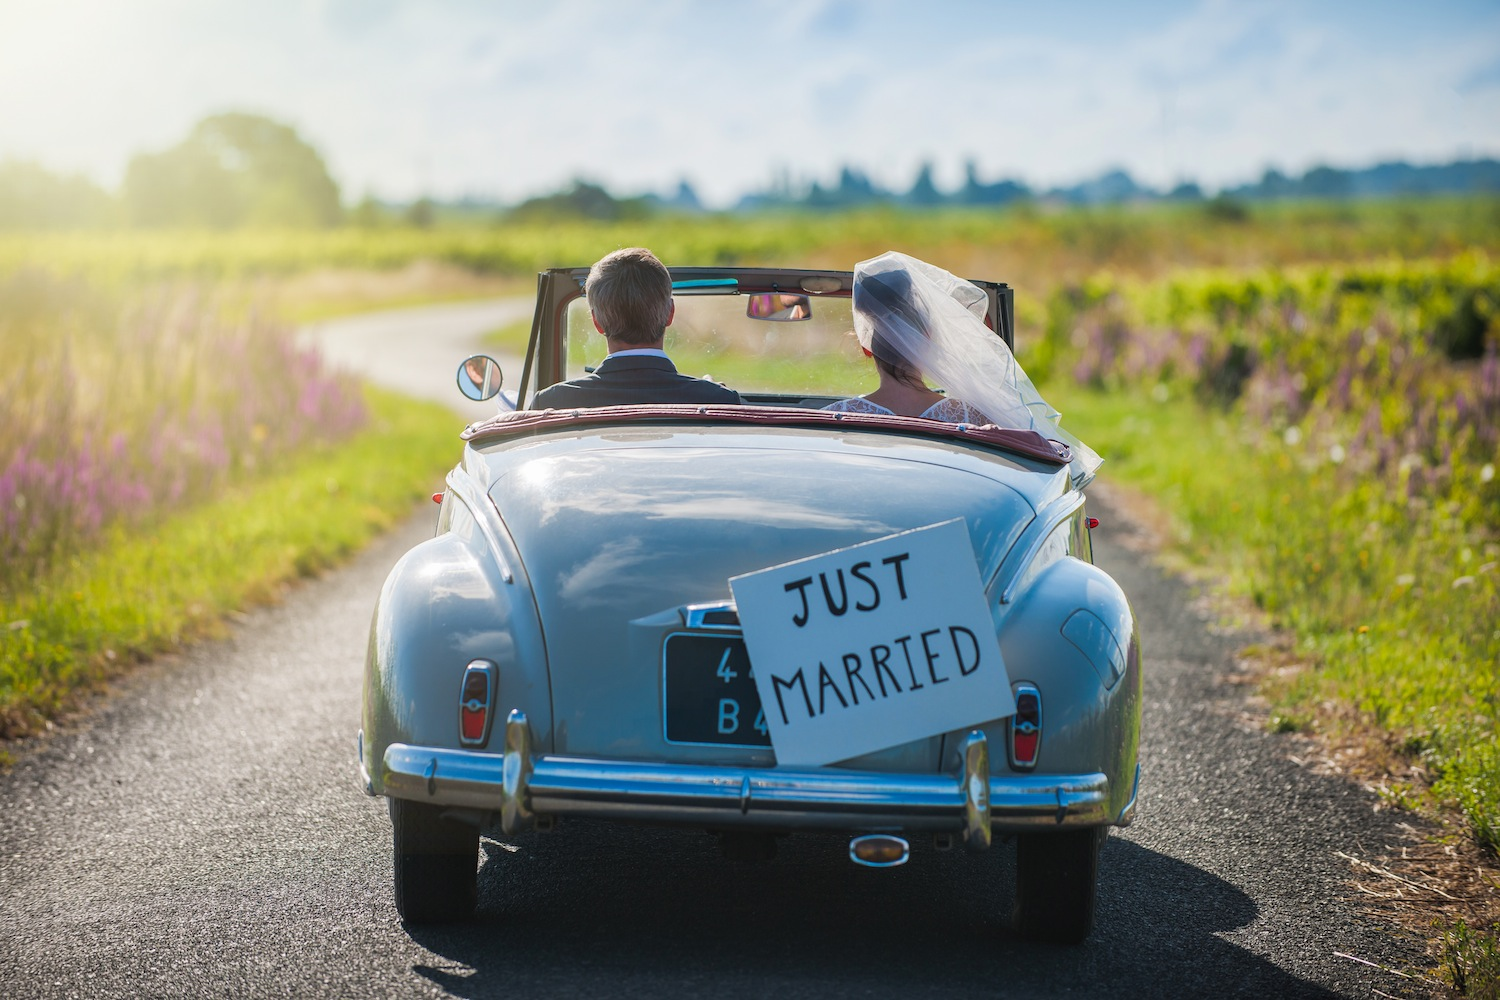 just-married-car-post-wedding-videographers-ny-nj-live-picture-studios.jpg